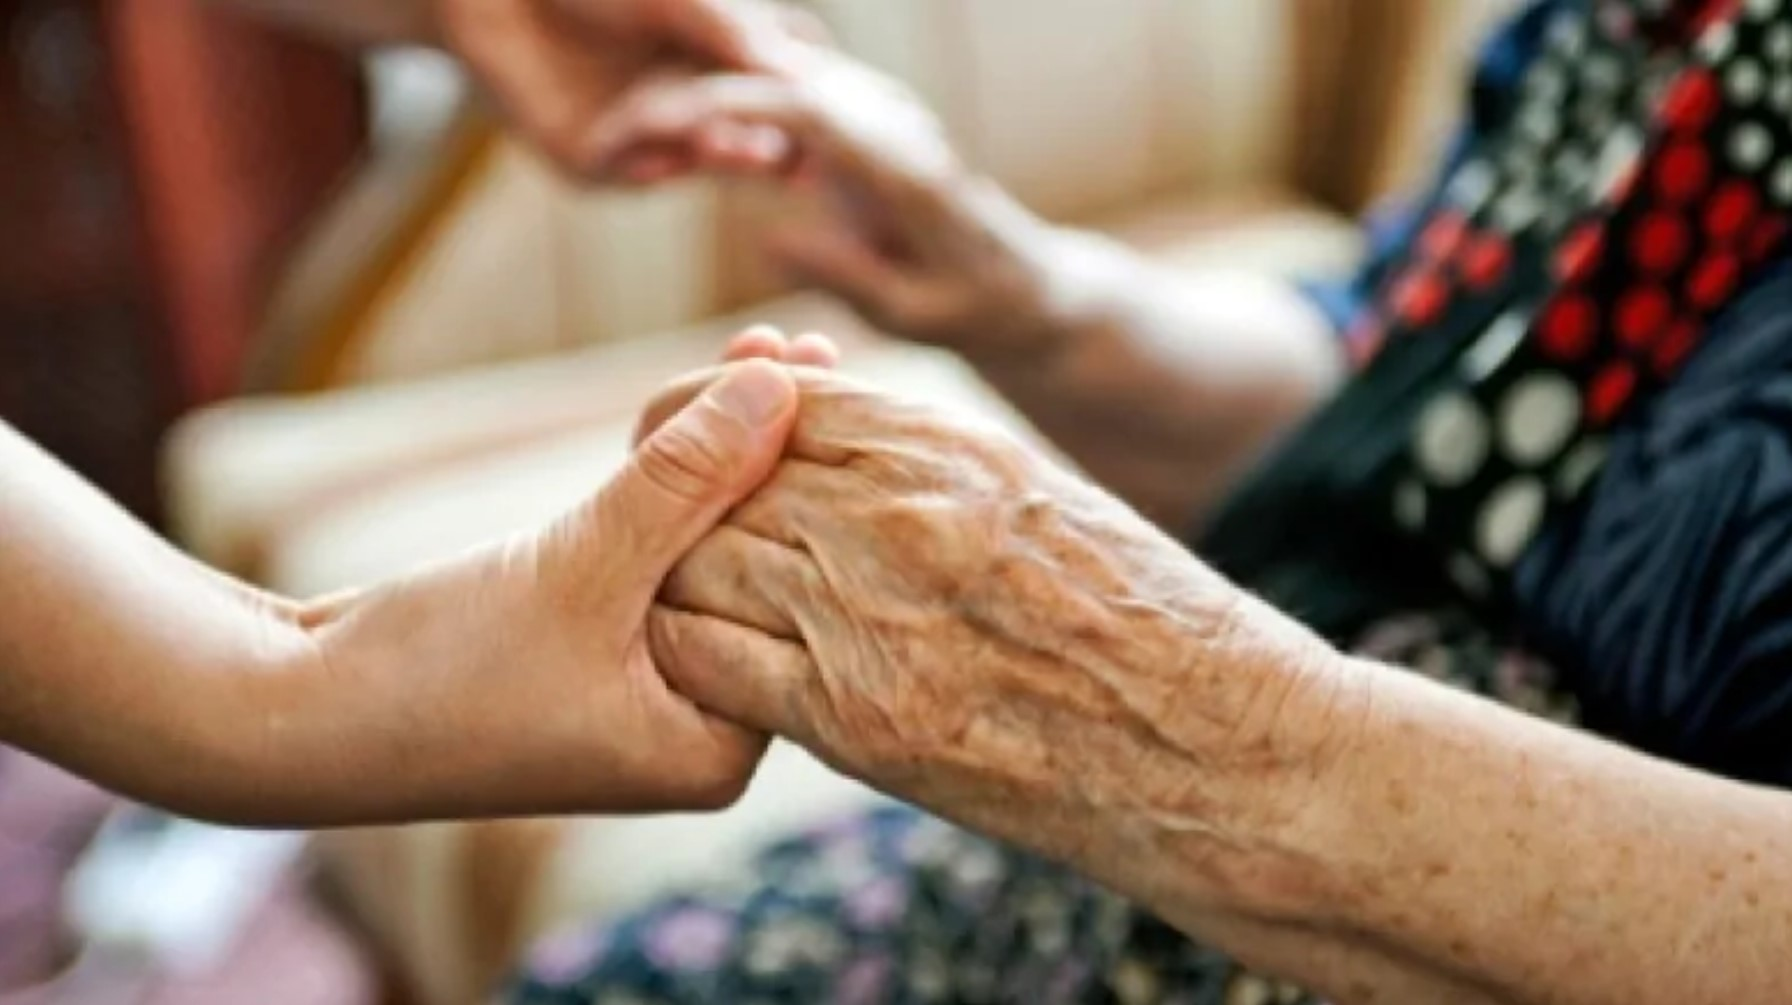 Not enough home care top concern for Ontario patients, study finds